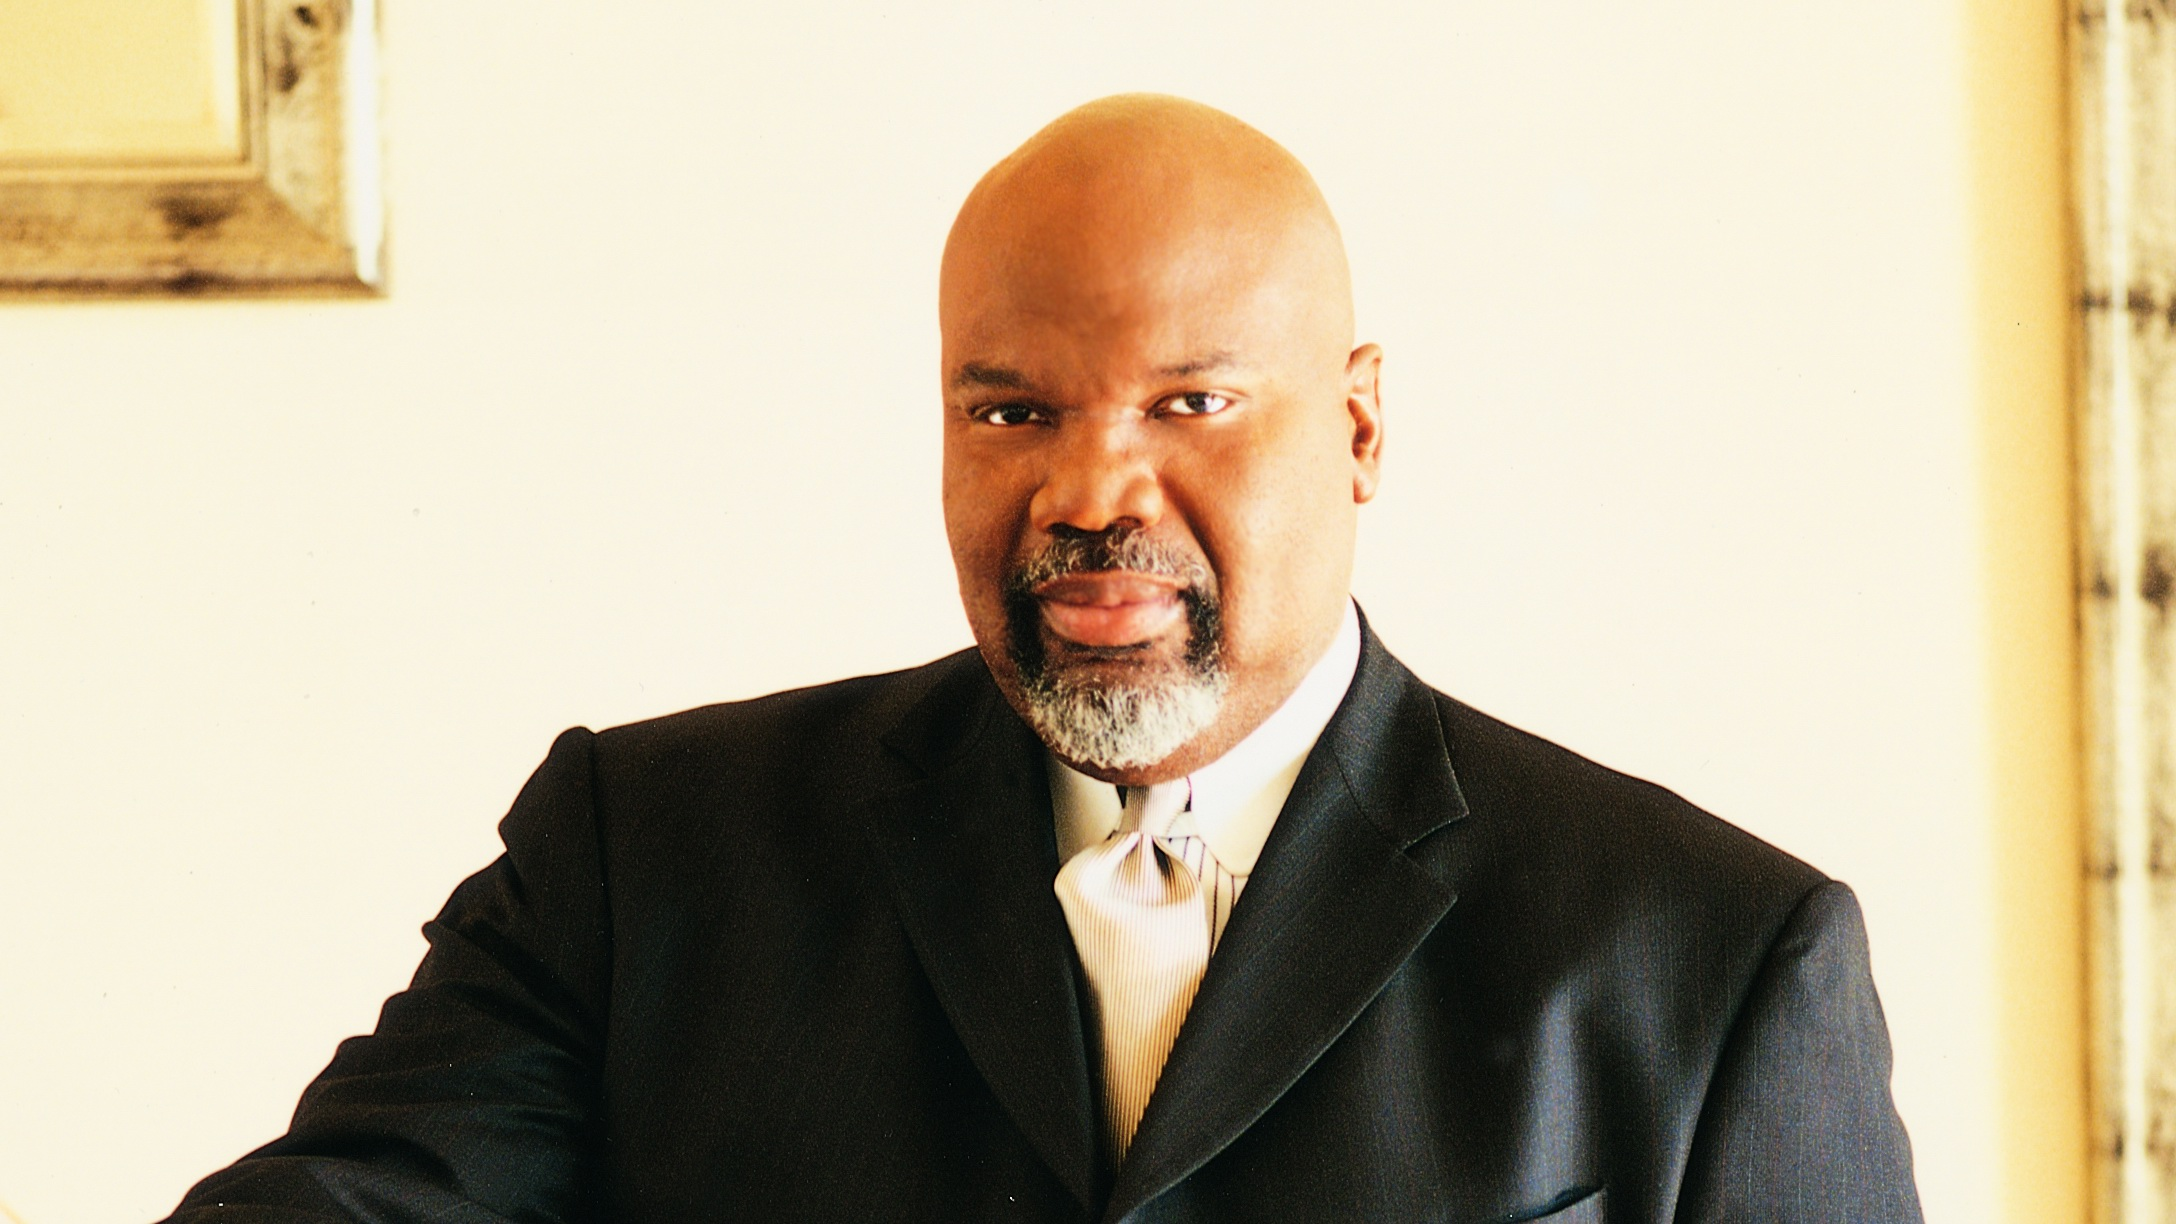 Bishop T.D. Jakes Calls Preachers Of L.A. Junk TV-115-1